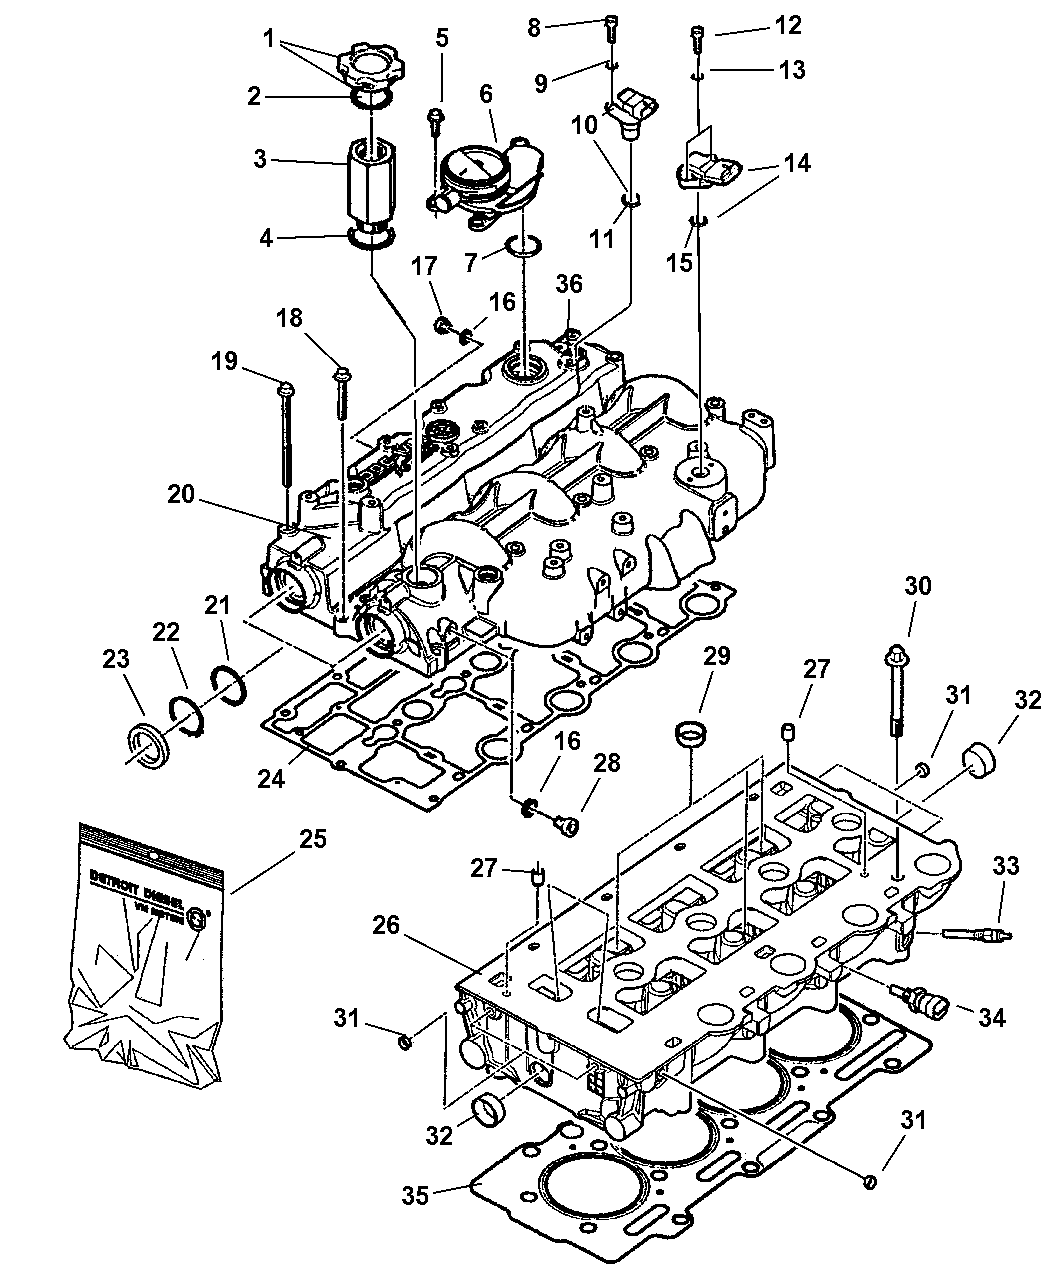 Jeep Liberty 3 7 Engine Diagram 6 Cylinder